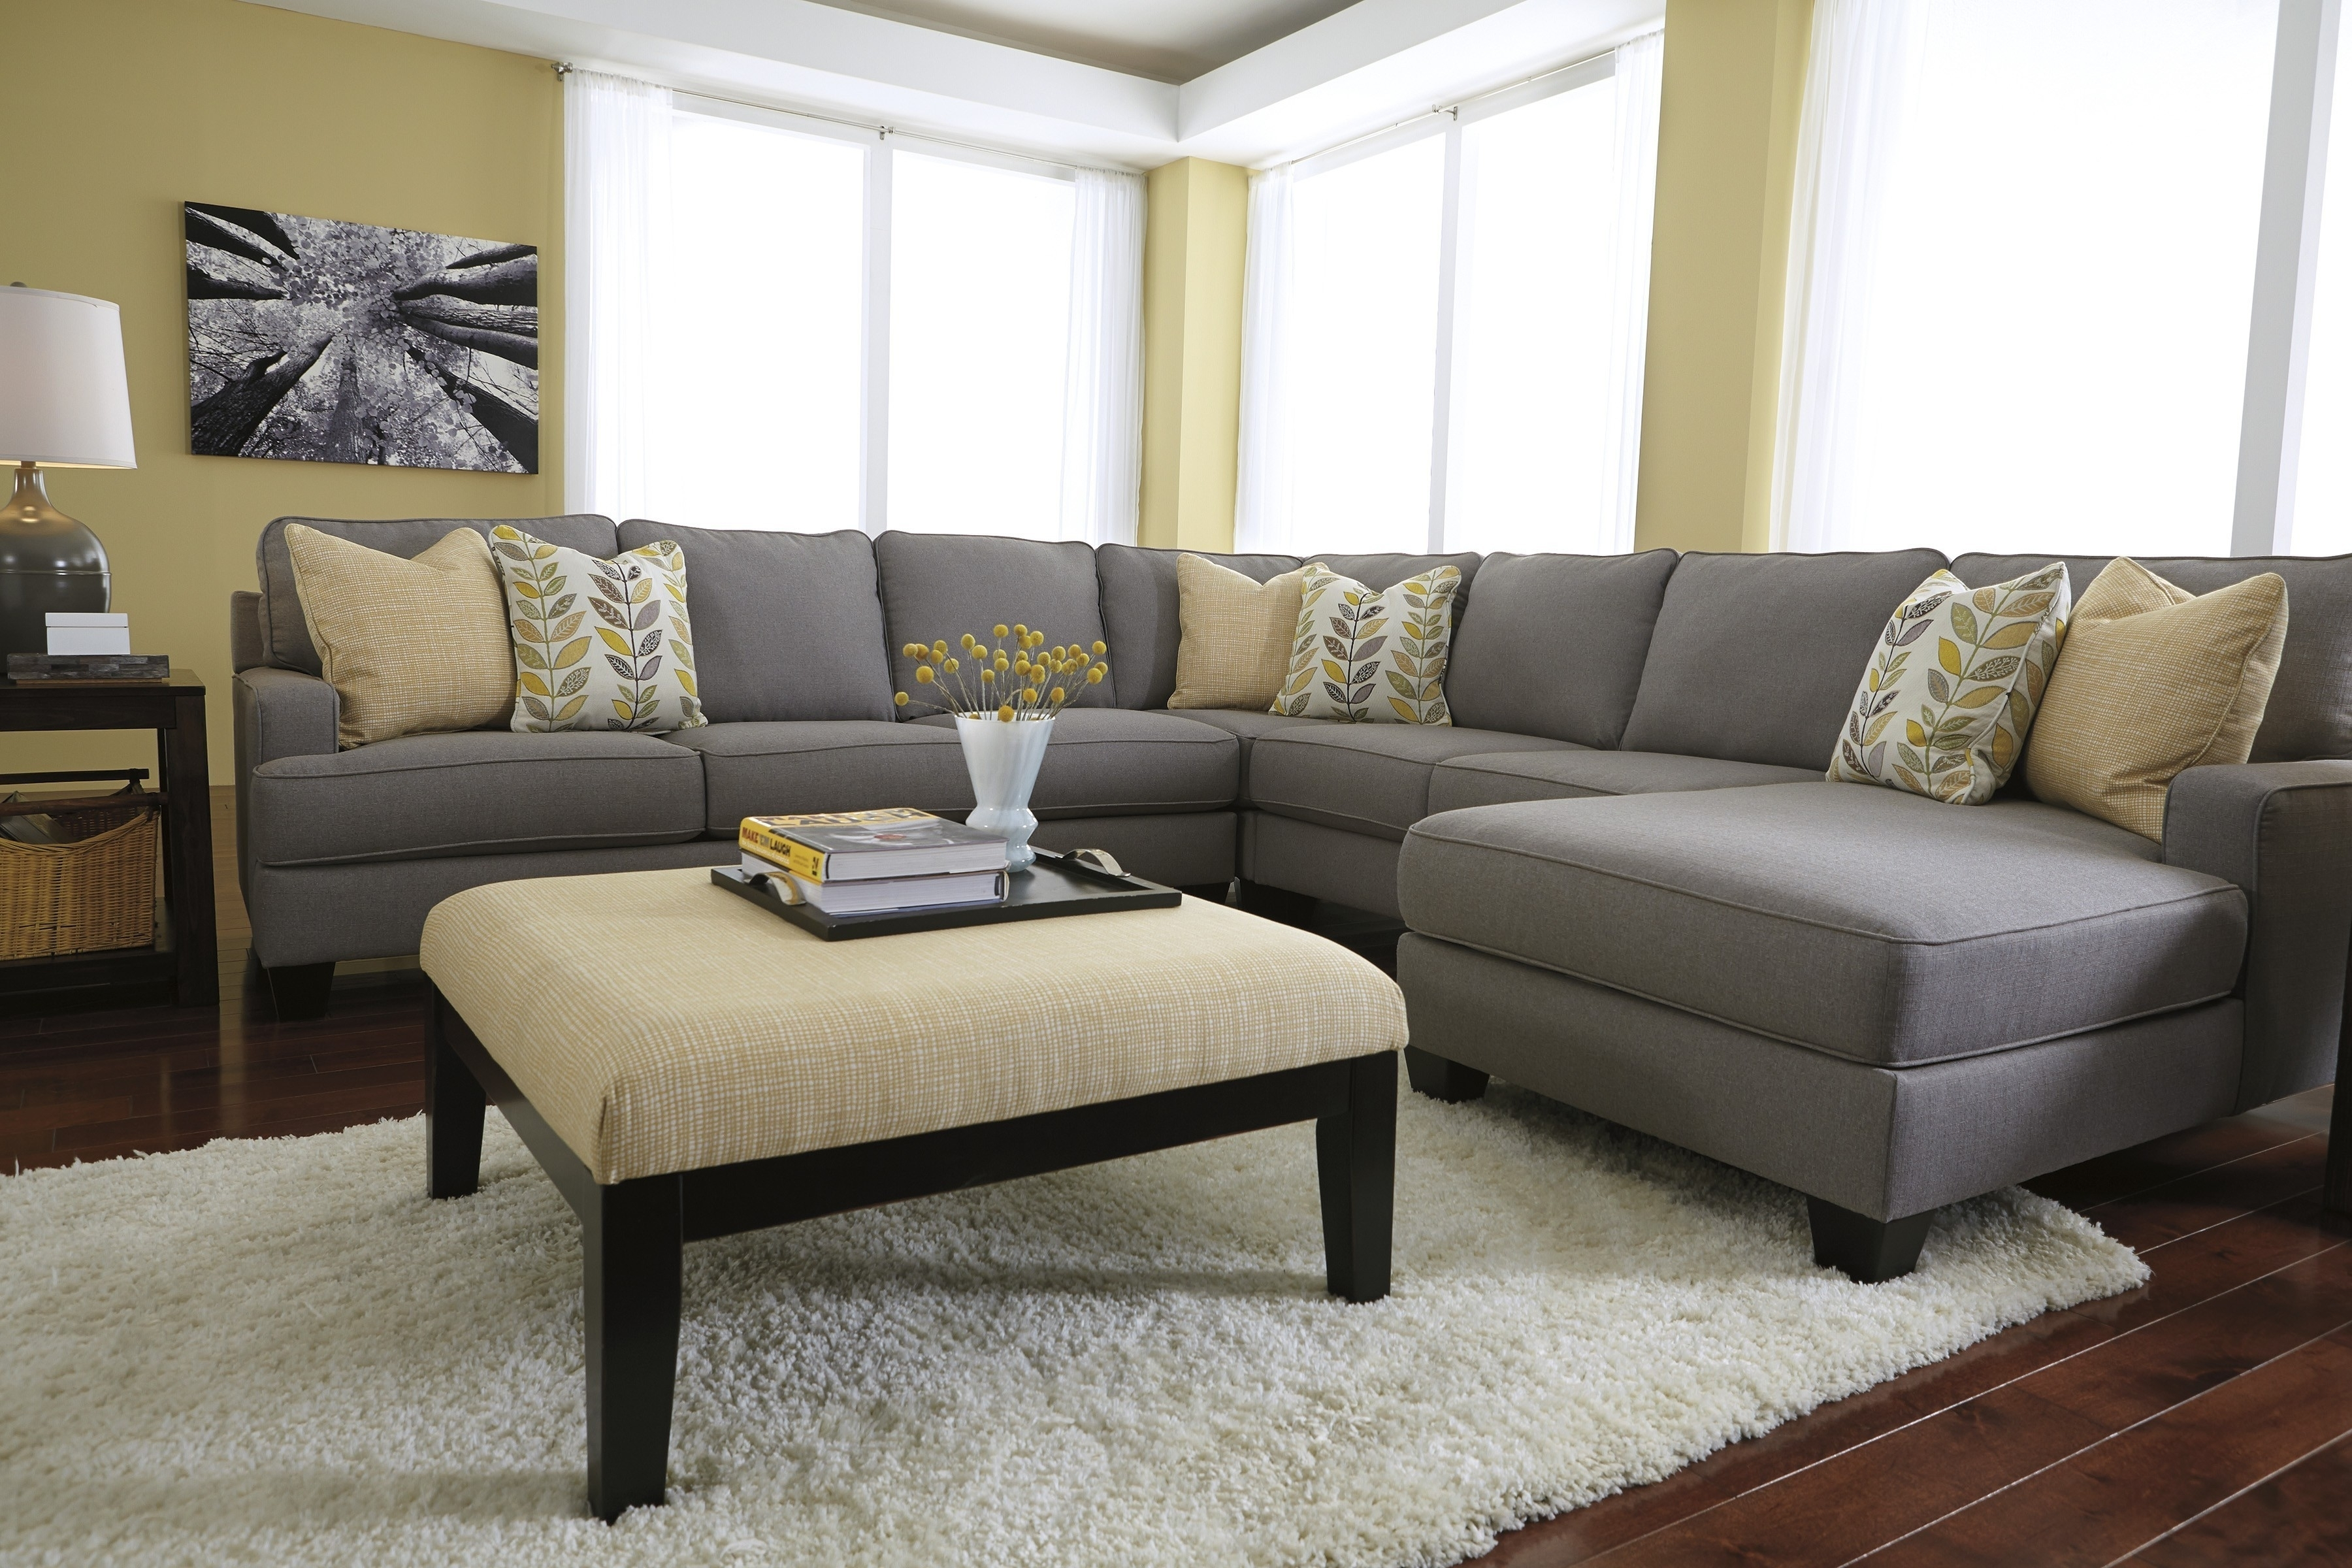 Amazing Oversized Sectional Sofas Cheap 24 With Additional Sleek Within Sleek Sectional Sofas (Image 1 of 10)